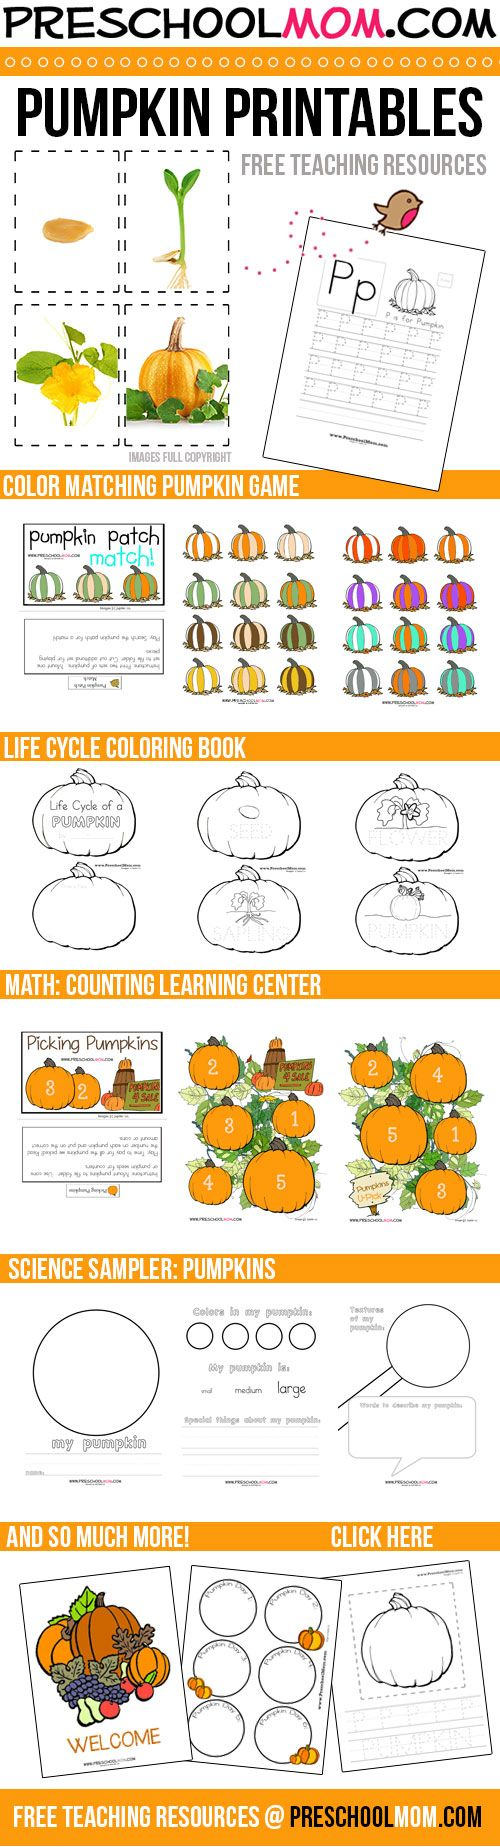 Uncategorized Pumpkin Math Worksheet 76 best pumpkin math images on pinterest free printables there is a ton here life cycle photo